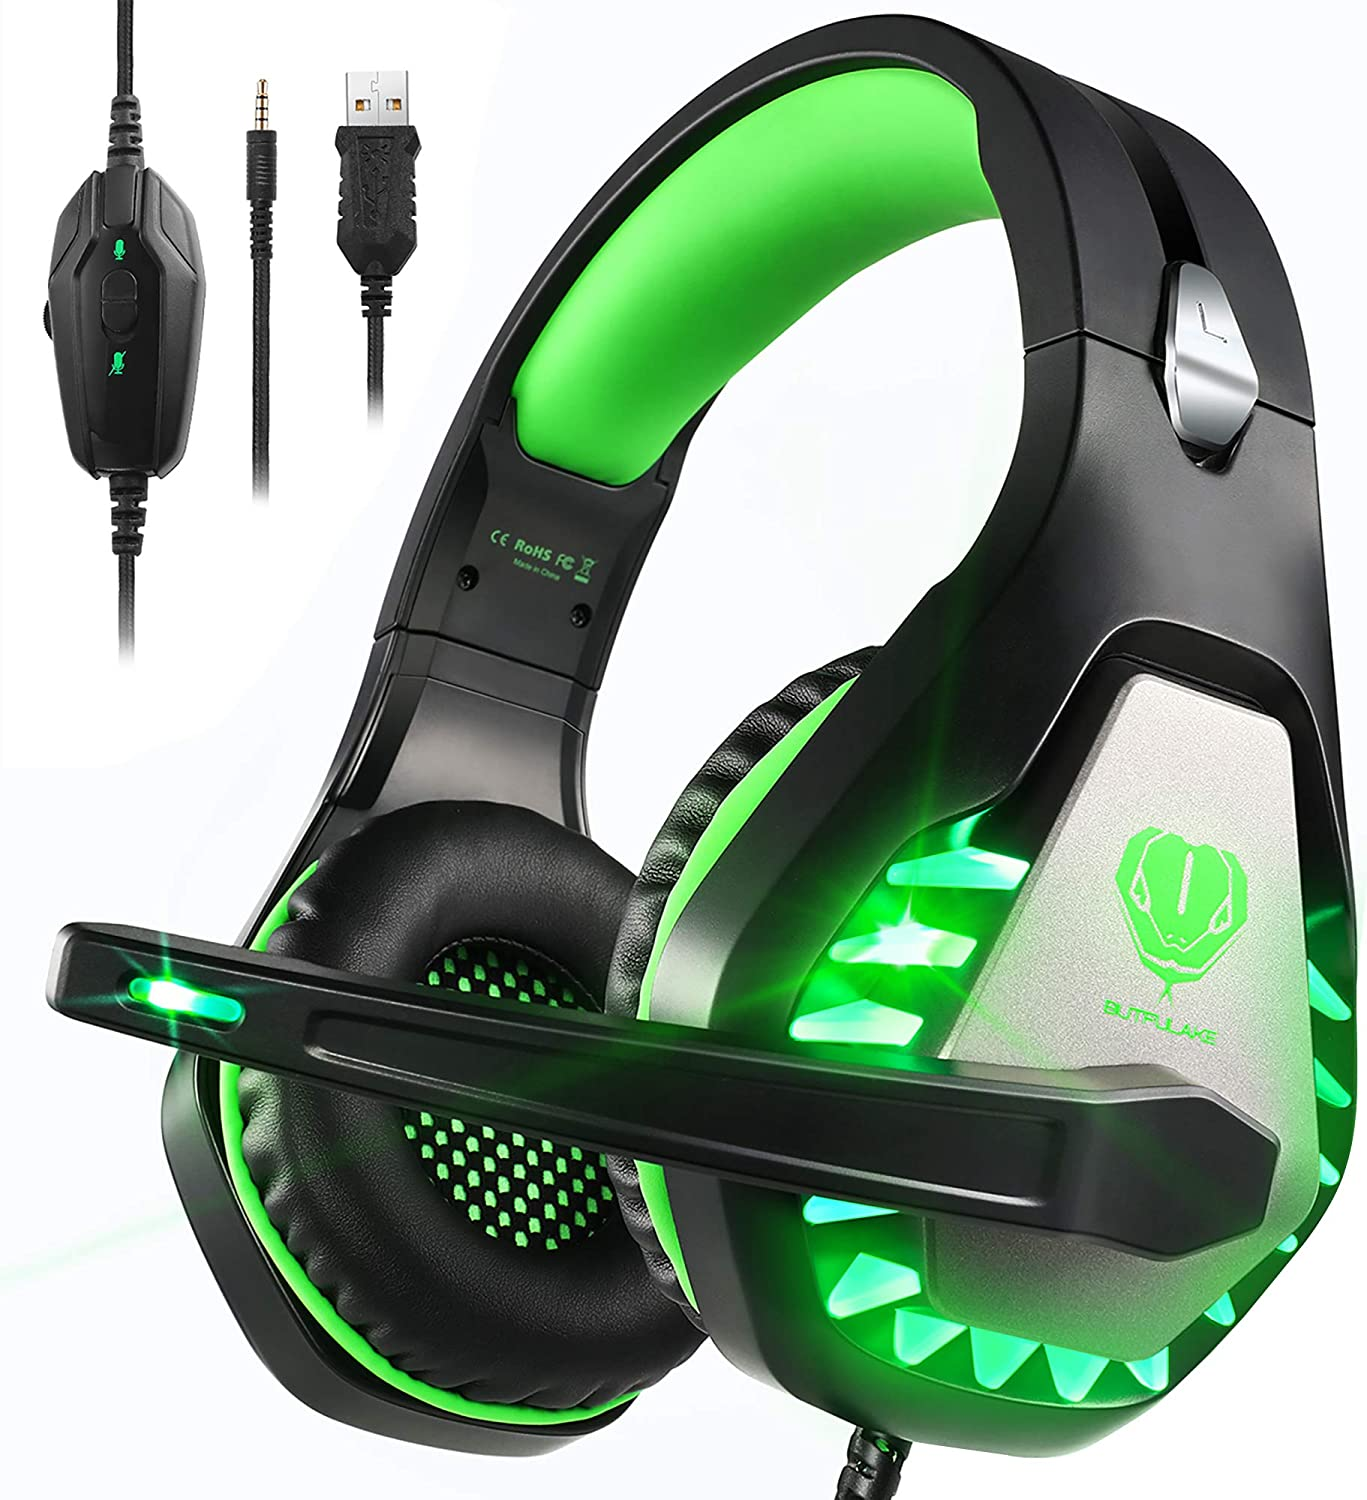 Auriculares Gaming PS4,Cascos Gaming de Estéreo con Micrófono Bass Surround y Cancelación de Ruido Auriculares Compatible para PC/Xbox One/Nintendo Switch/Mac Cascos Gaming 3.5mm Jack con Luz LED